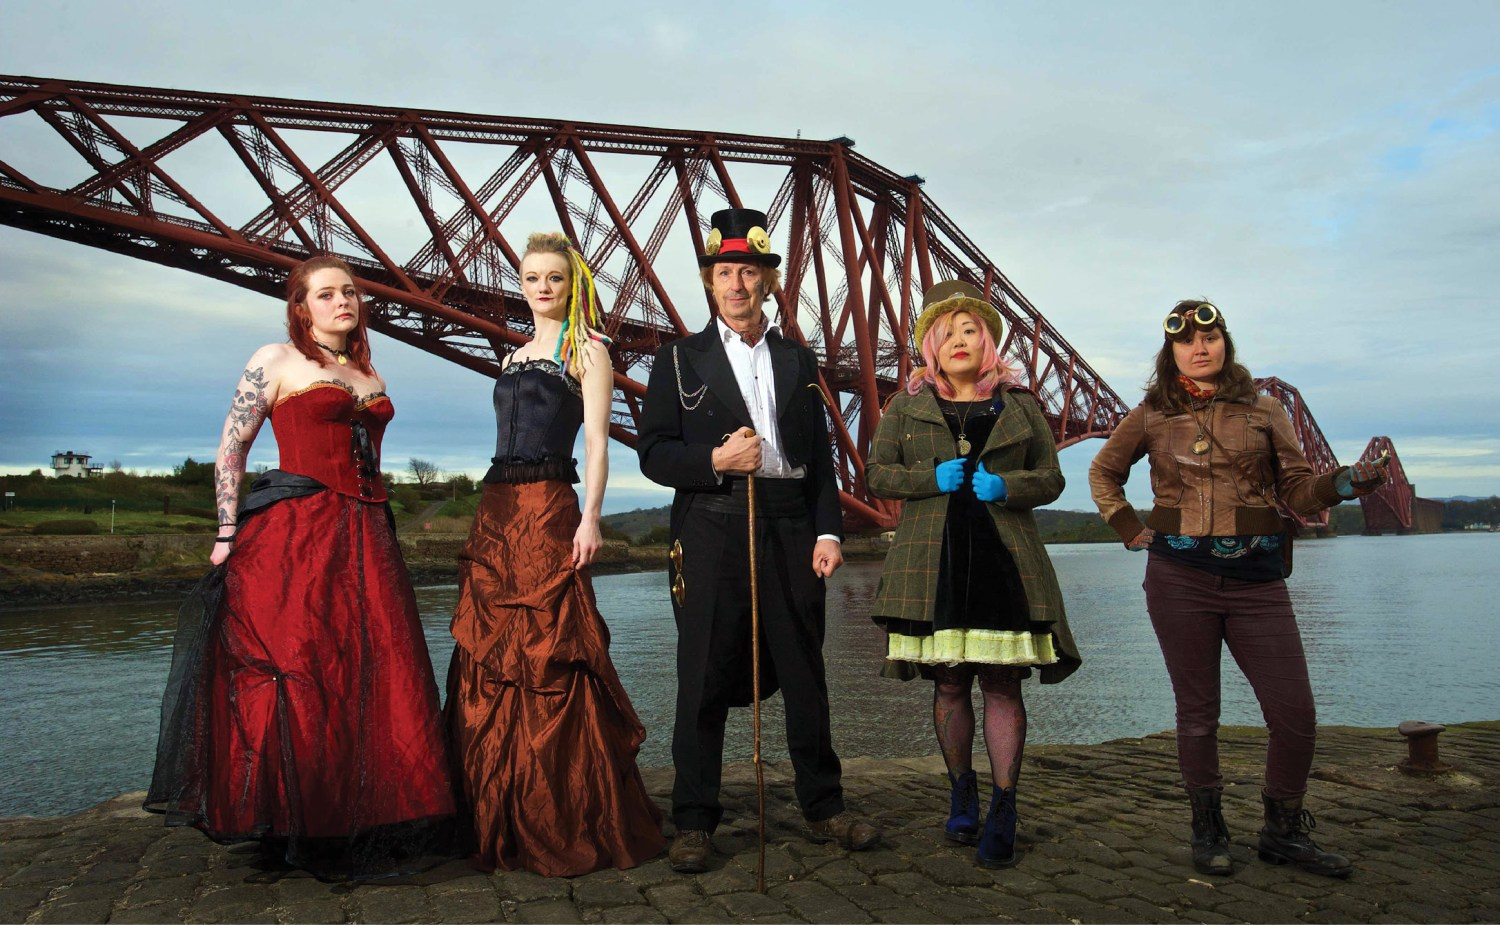 above Steampunk enthusiasts gather at Forth Bridge in their Victorian-inspired finery.